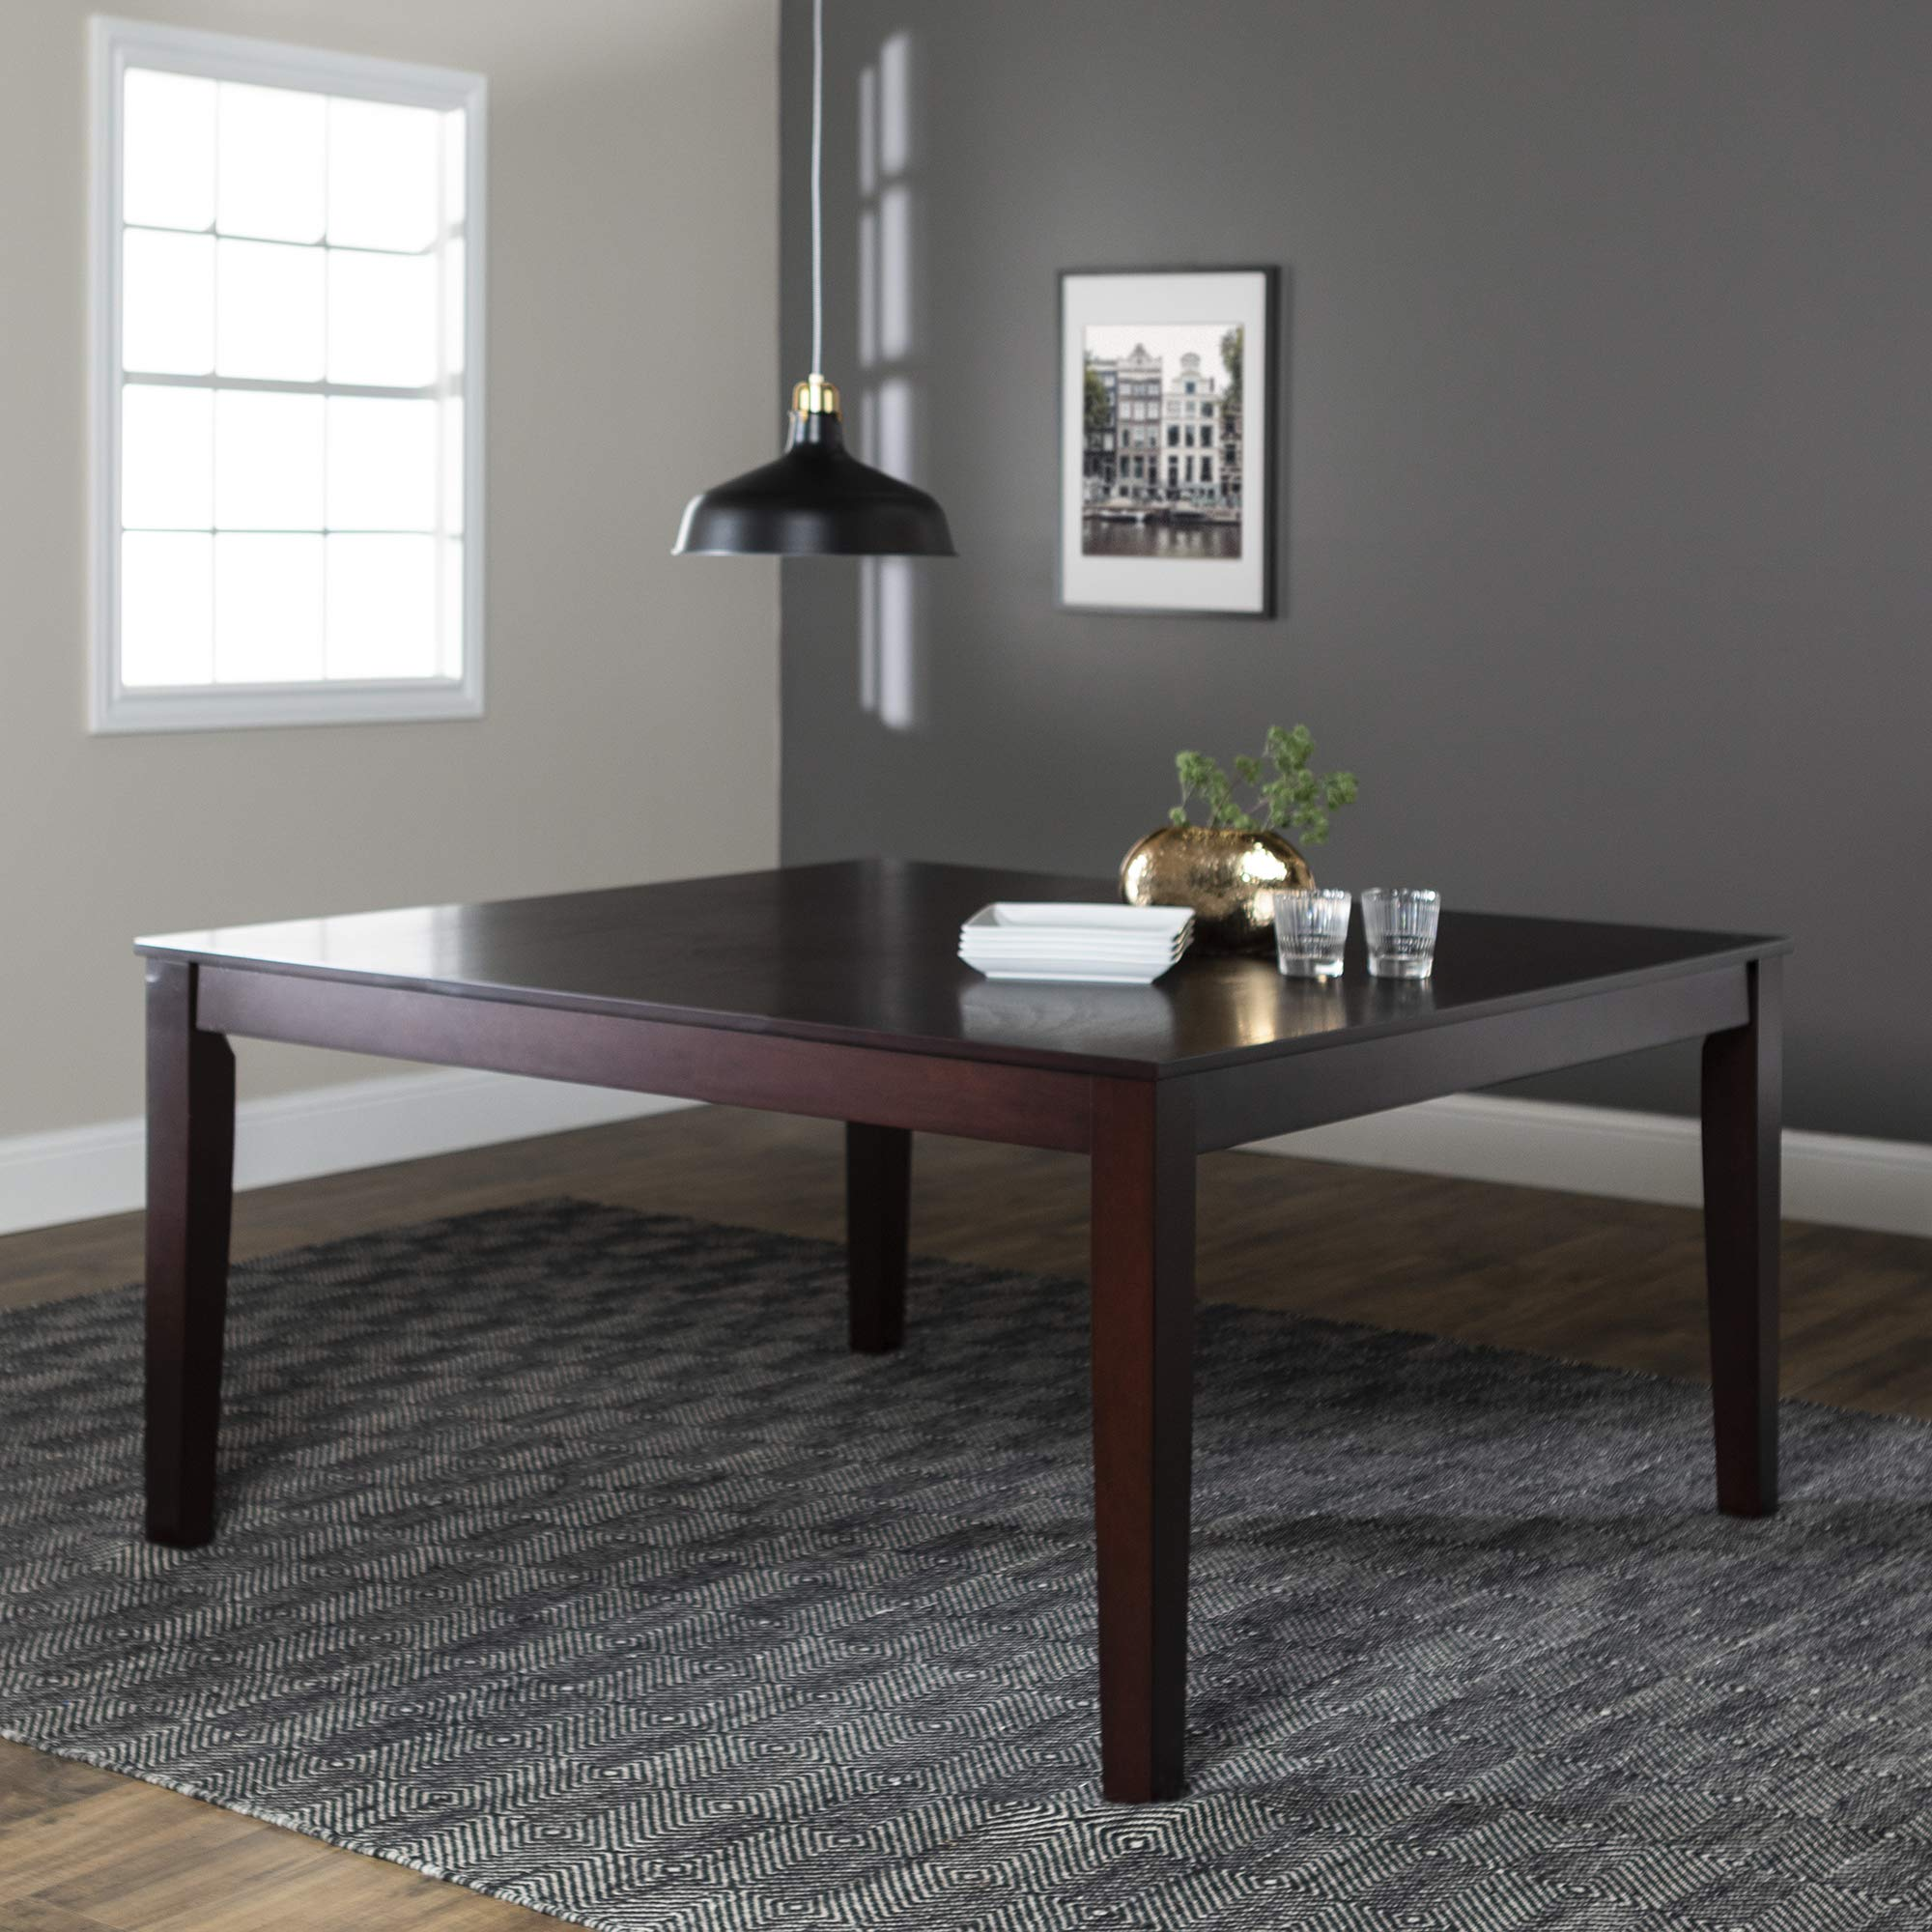 WE Furniture Kitchen Square Wood Dining Table, 60'' Espresso by WE Furniture